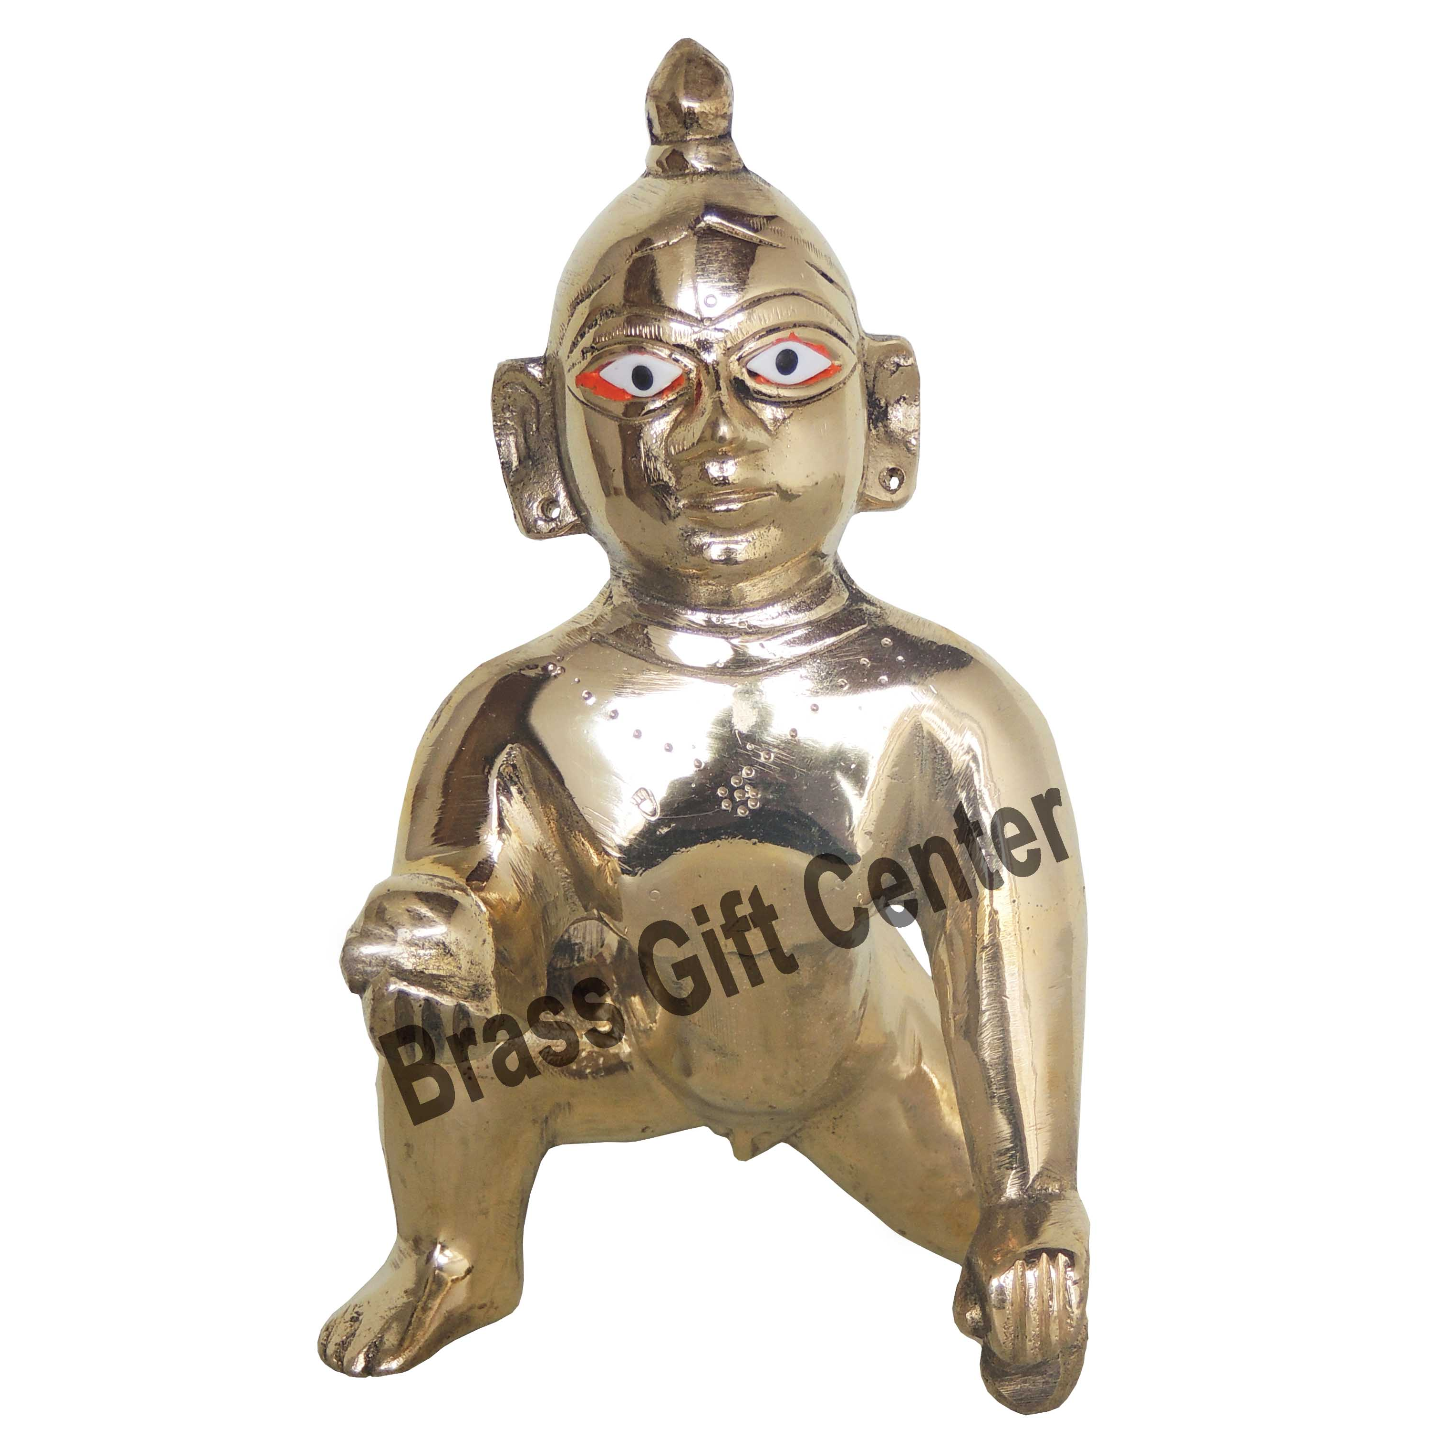 Brass Laddu Gopal God Idol With Brass Finish, Height - 7 Inch (BS871 E)